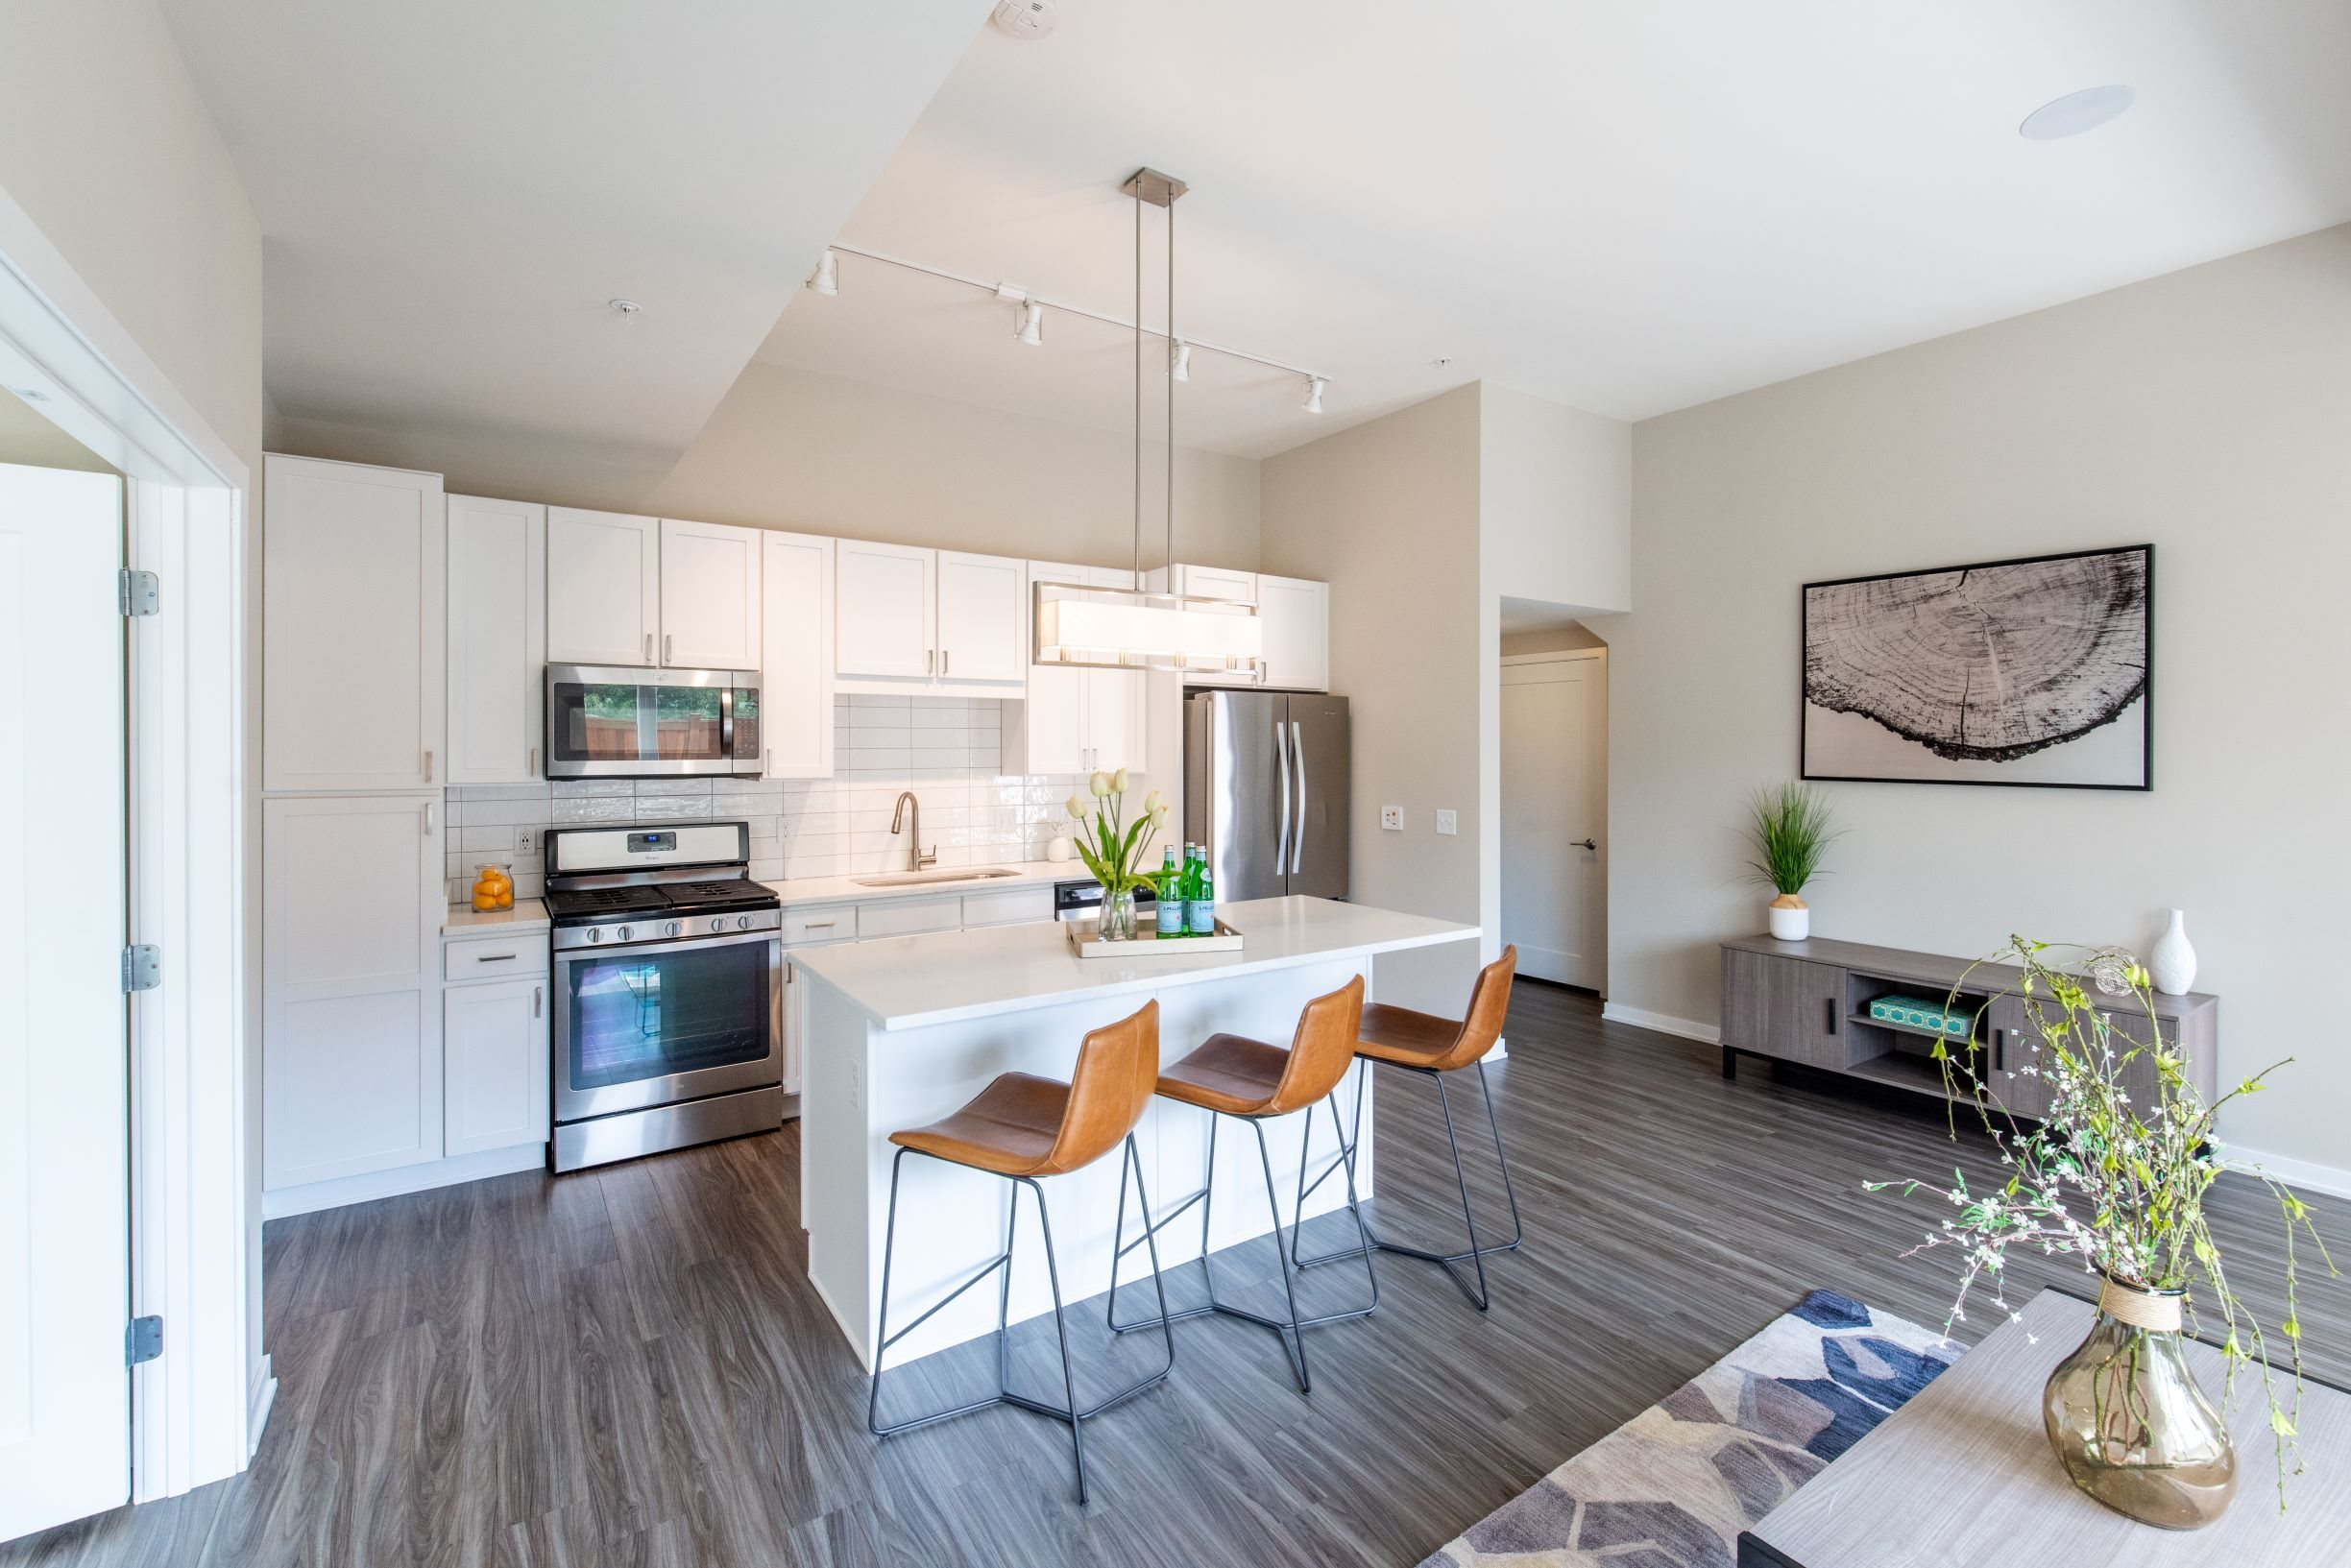 Kitchen with white cabinets and modern light fixture